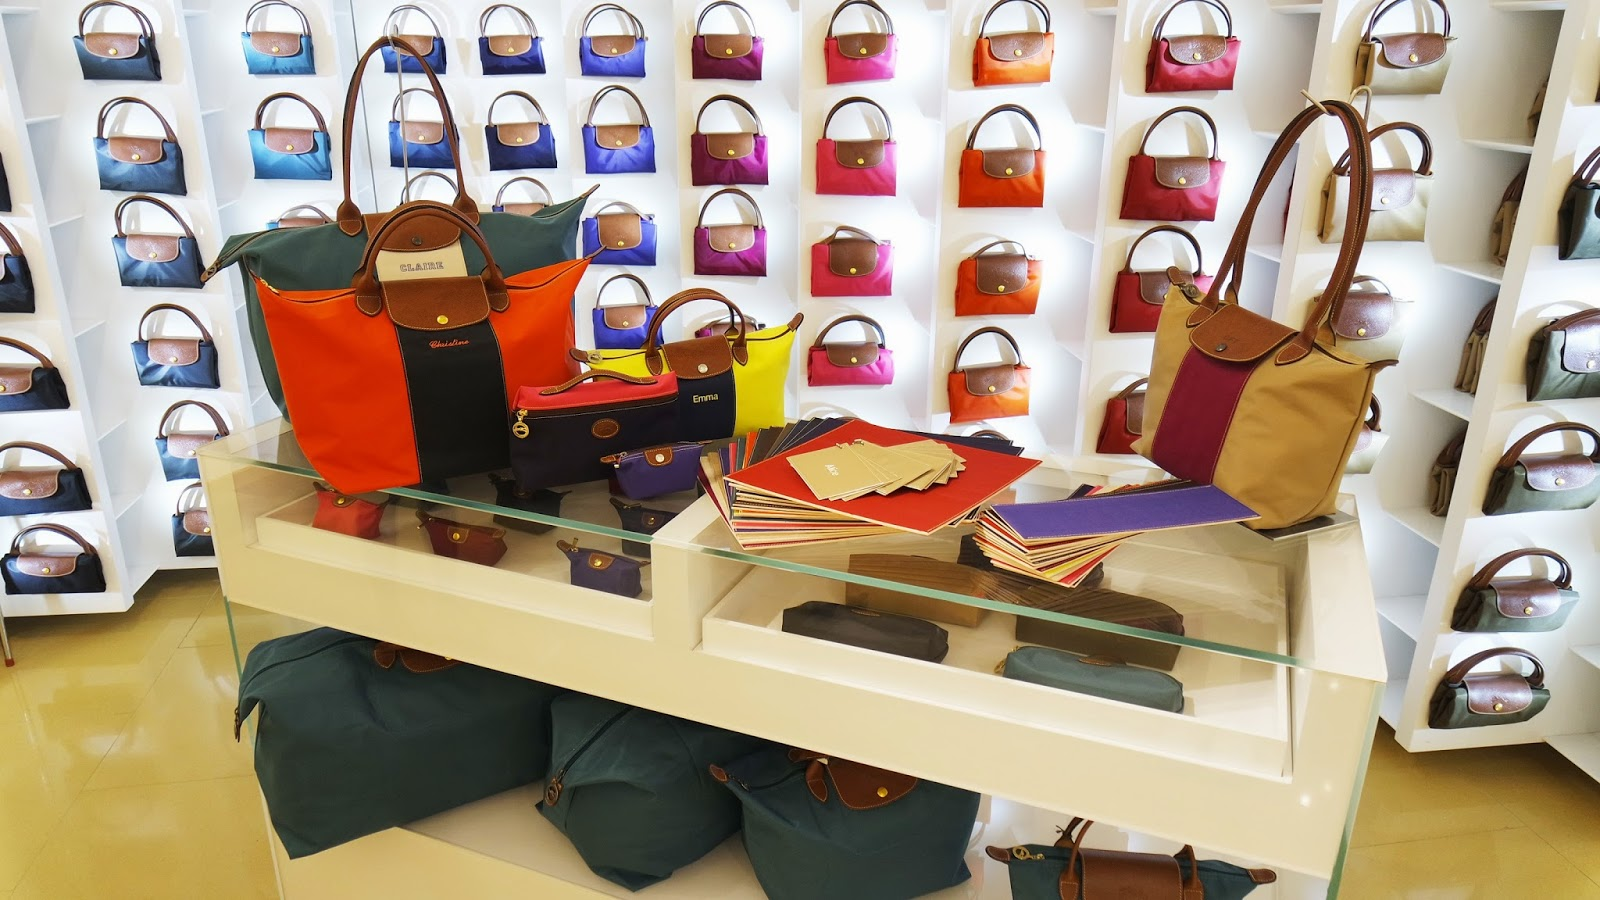 I m sure that we ve all seen this signature Longchamp bag before but after  my visit to Longchamp, I now understand why the Le Pliage is loved by so  many ... 65fefada84